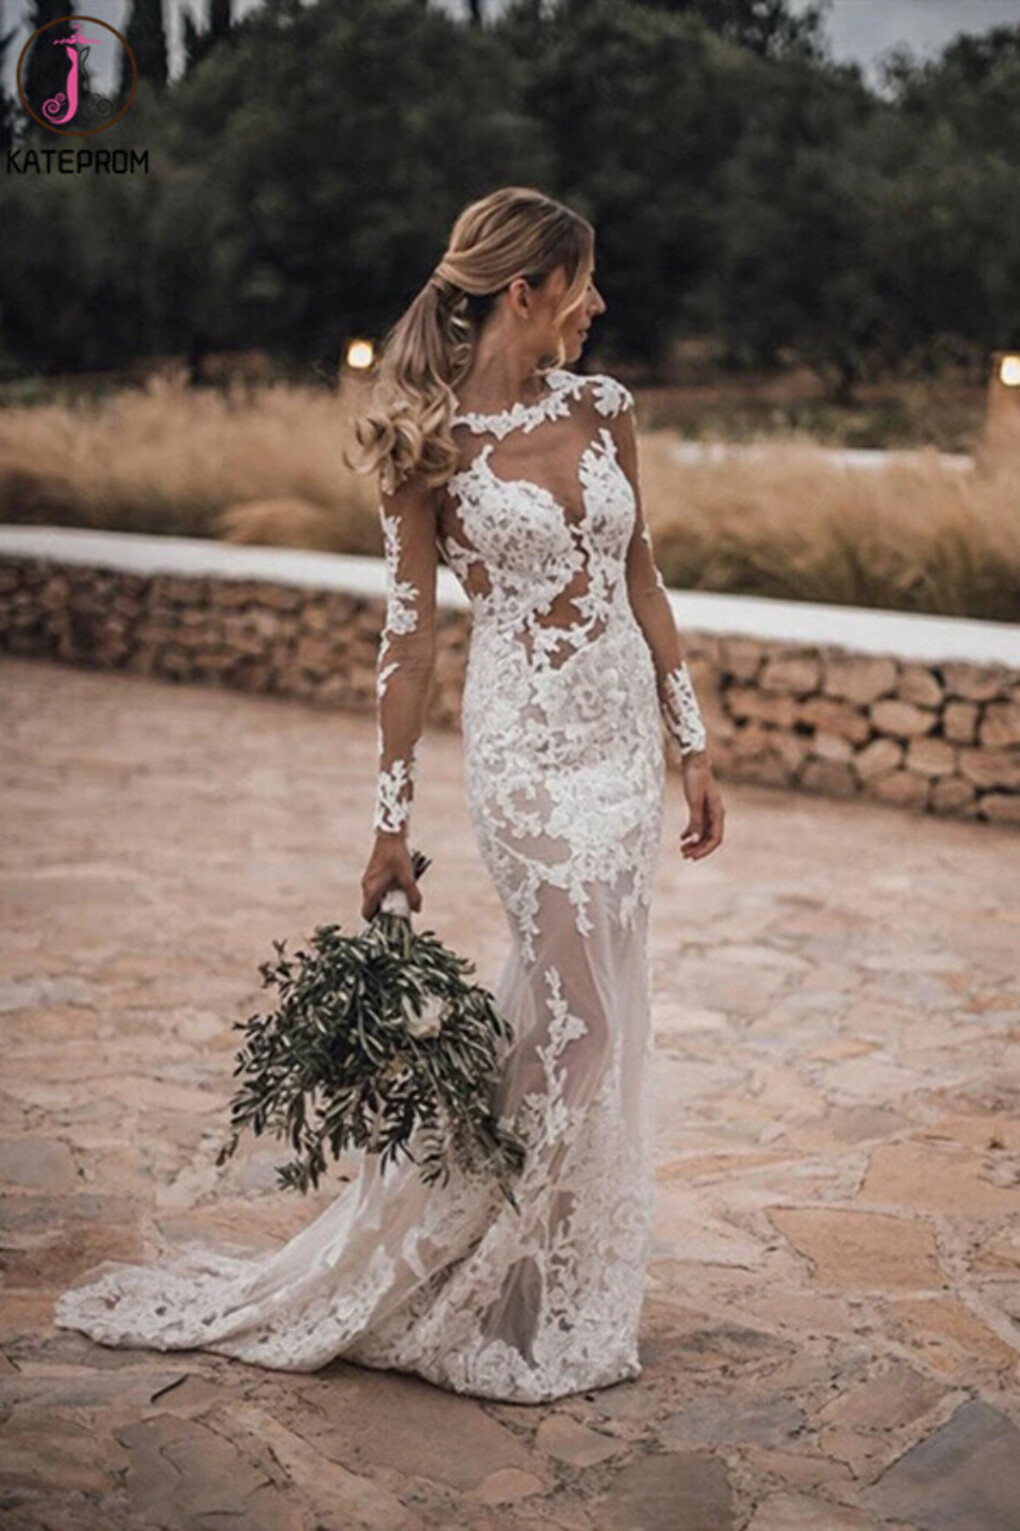 Kateprom Stunning Lace Appliques See Though Mermaid/Turmpet Wedding Dress Backless Rustic Wedding with Sleeves Gowns KPW0631